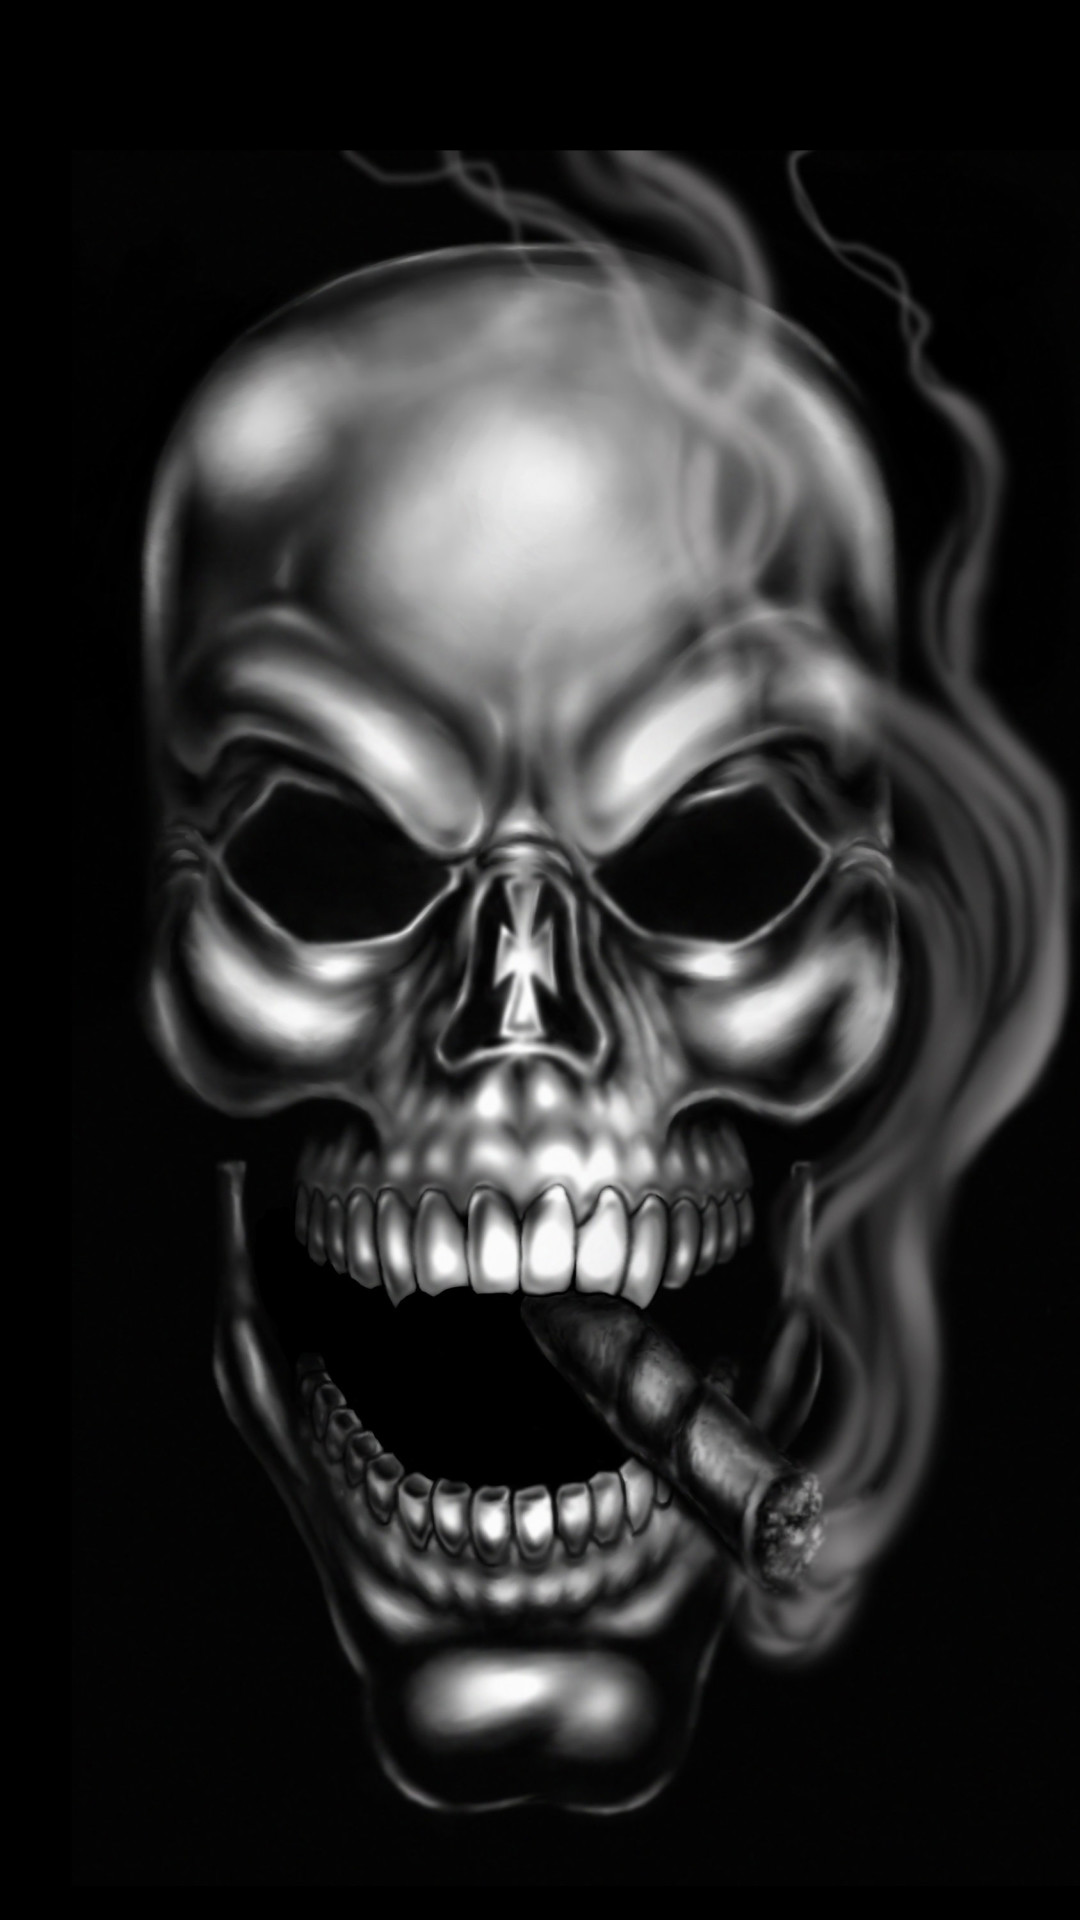 Skull Head Wallpaper Wallpapertag